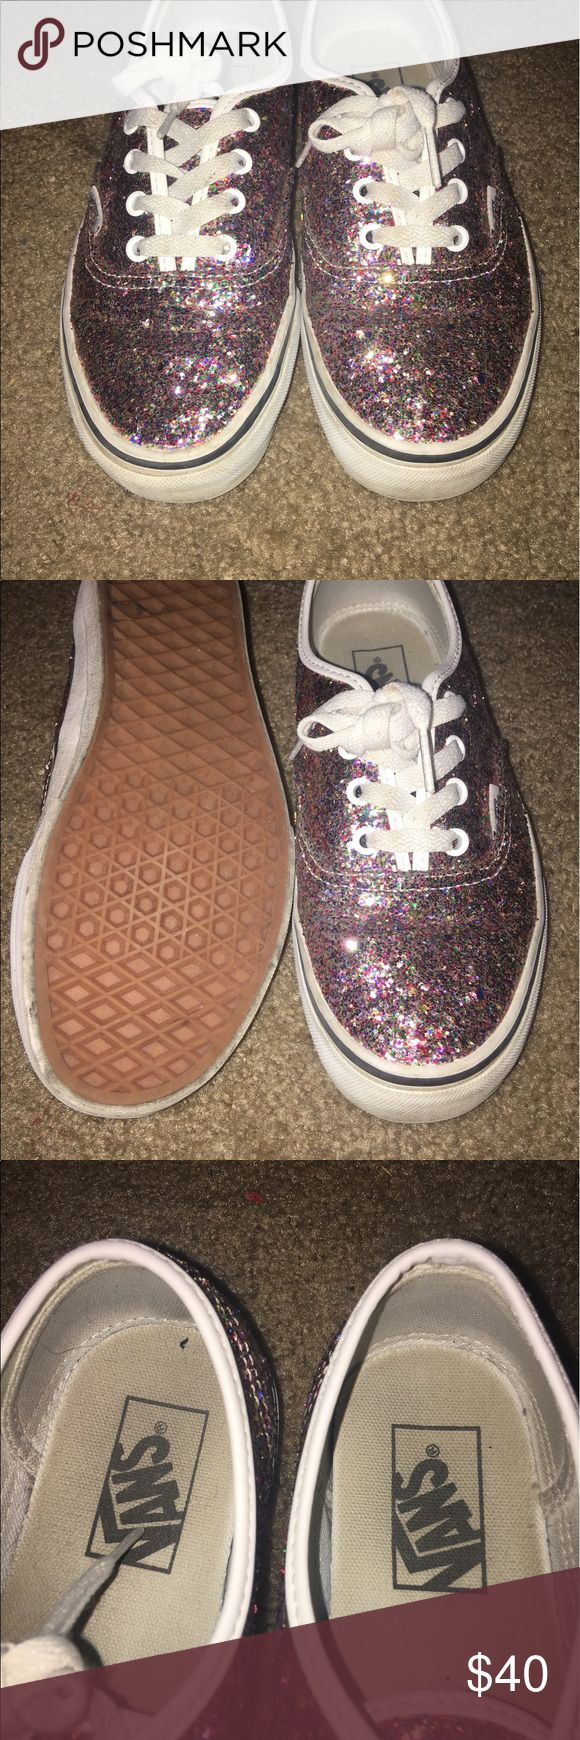 ✨✨Glitter Vans ! Glitter vans ! The glitter does not come off very stylish ! Have been worn a couple of times but in good condition! 7.5 women Vans Shoes Sneakers